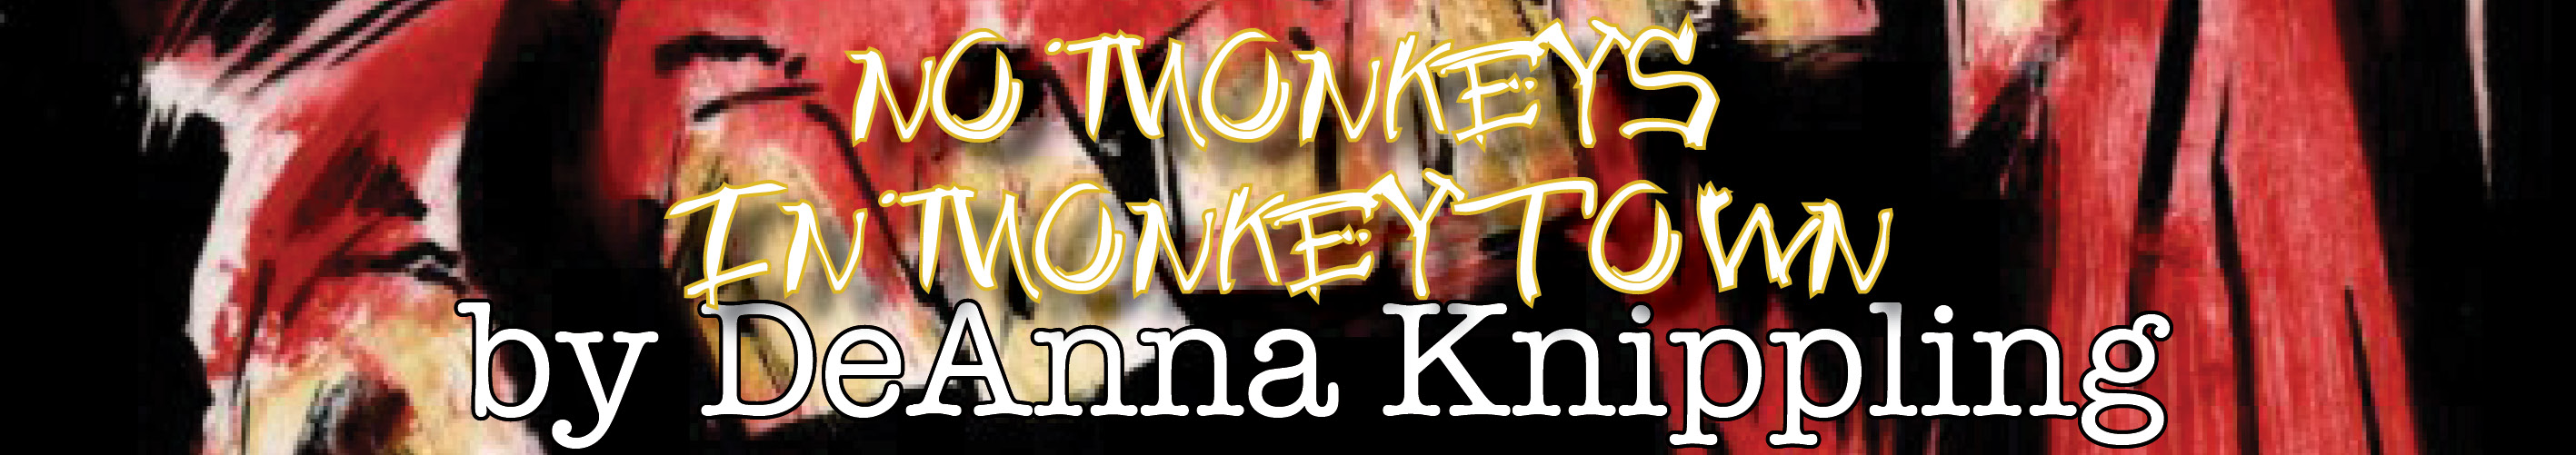 no monkeys in monkeytown